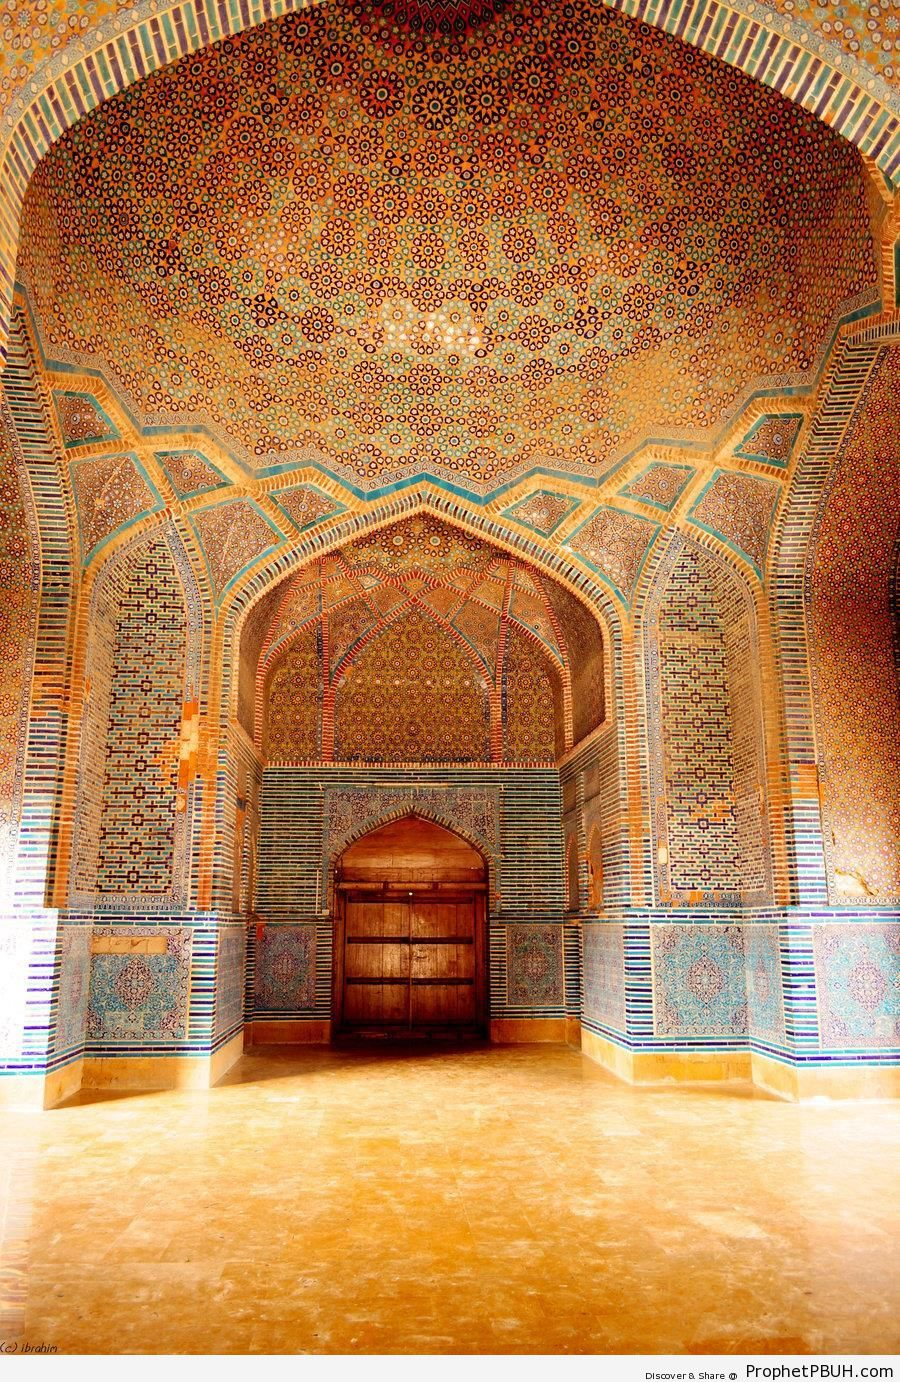 Islamic Decorative Tiles at Shah Jahan Mosque in Thatta, Pakistan - Islamic Architecture -Picture